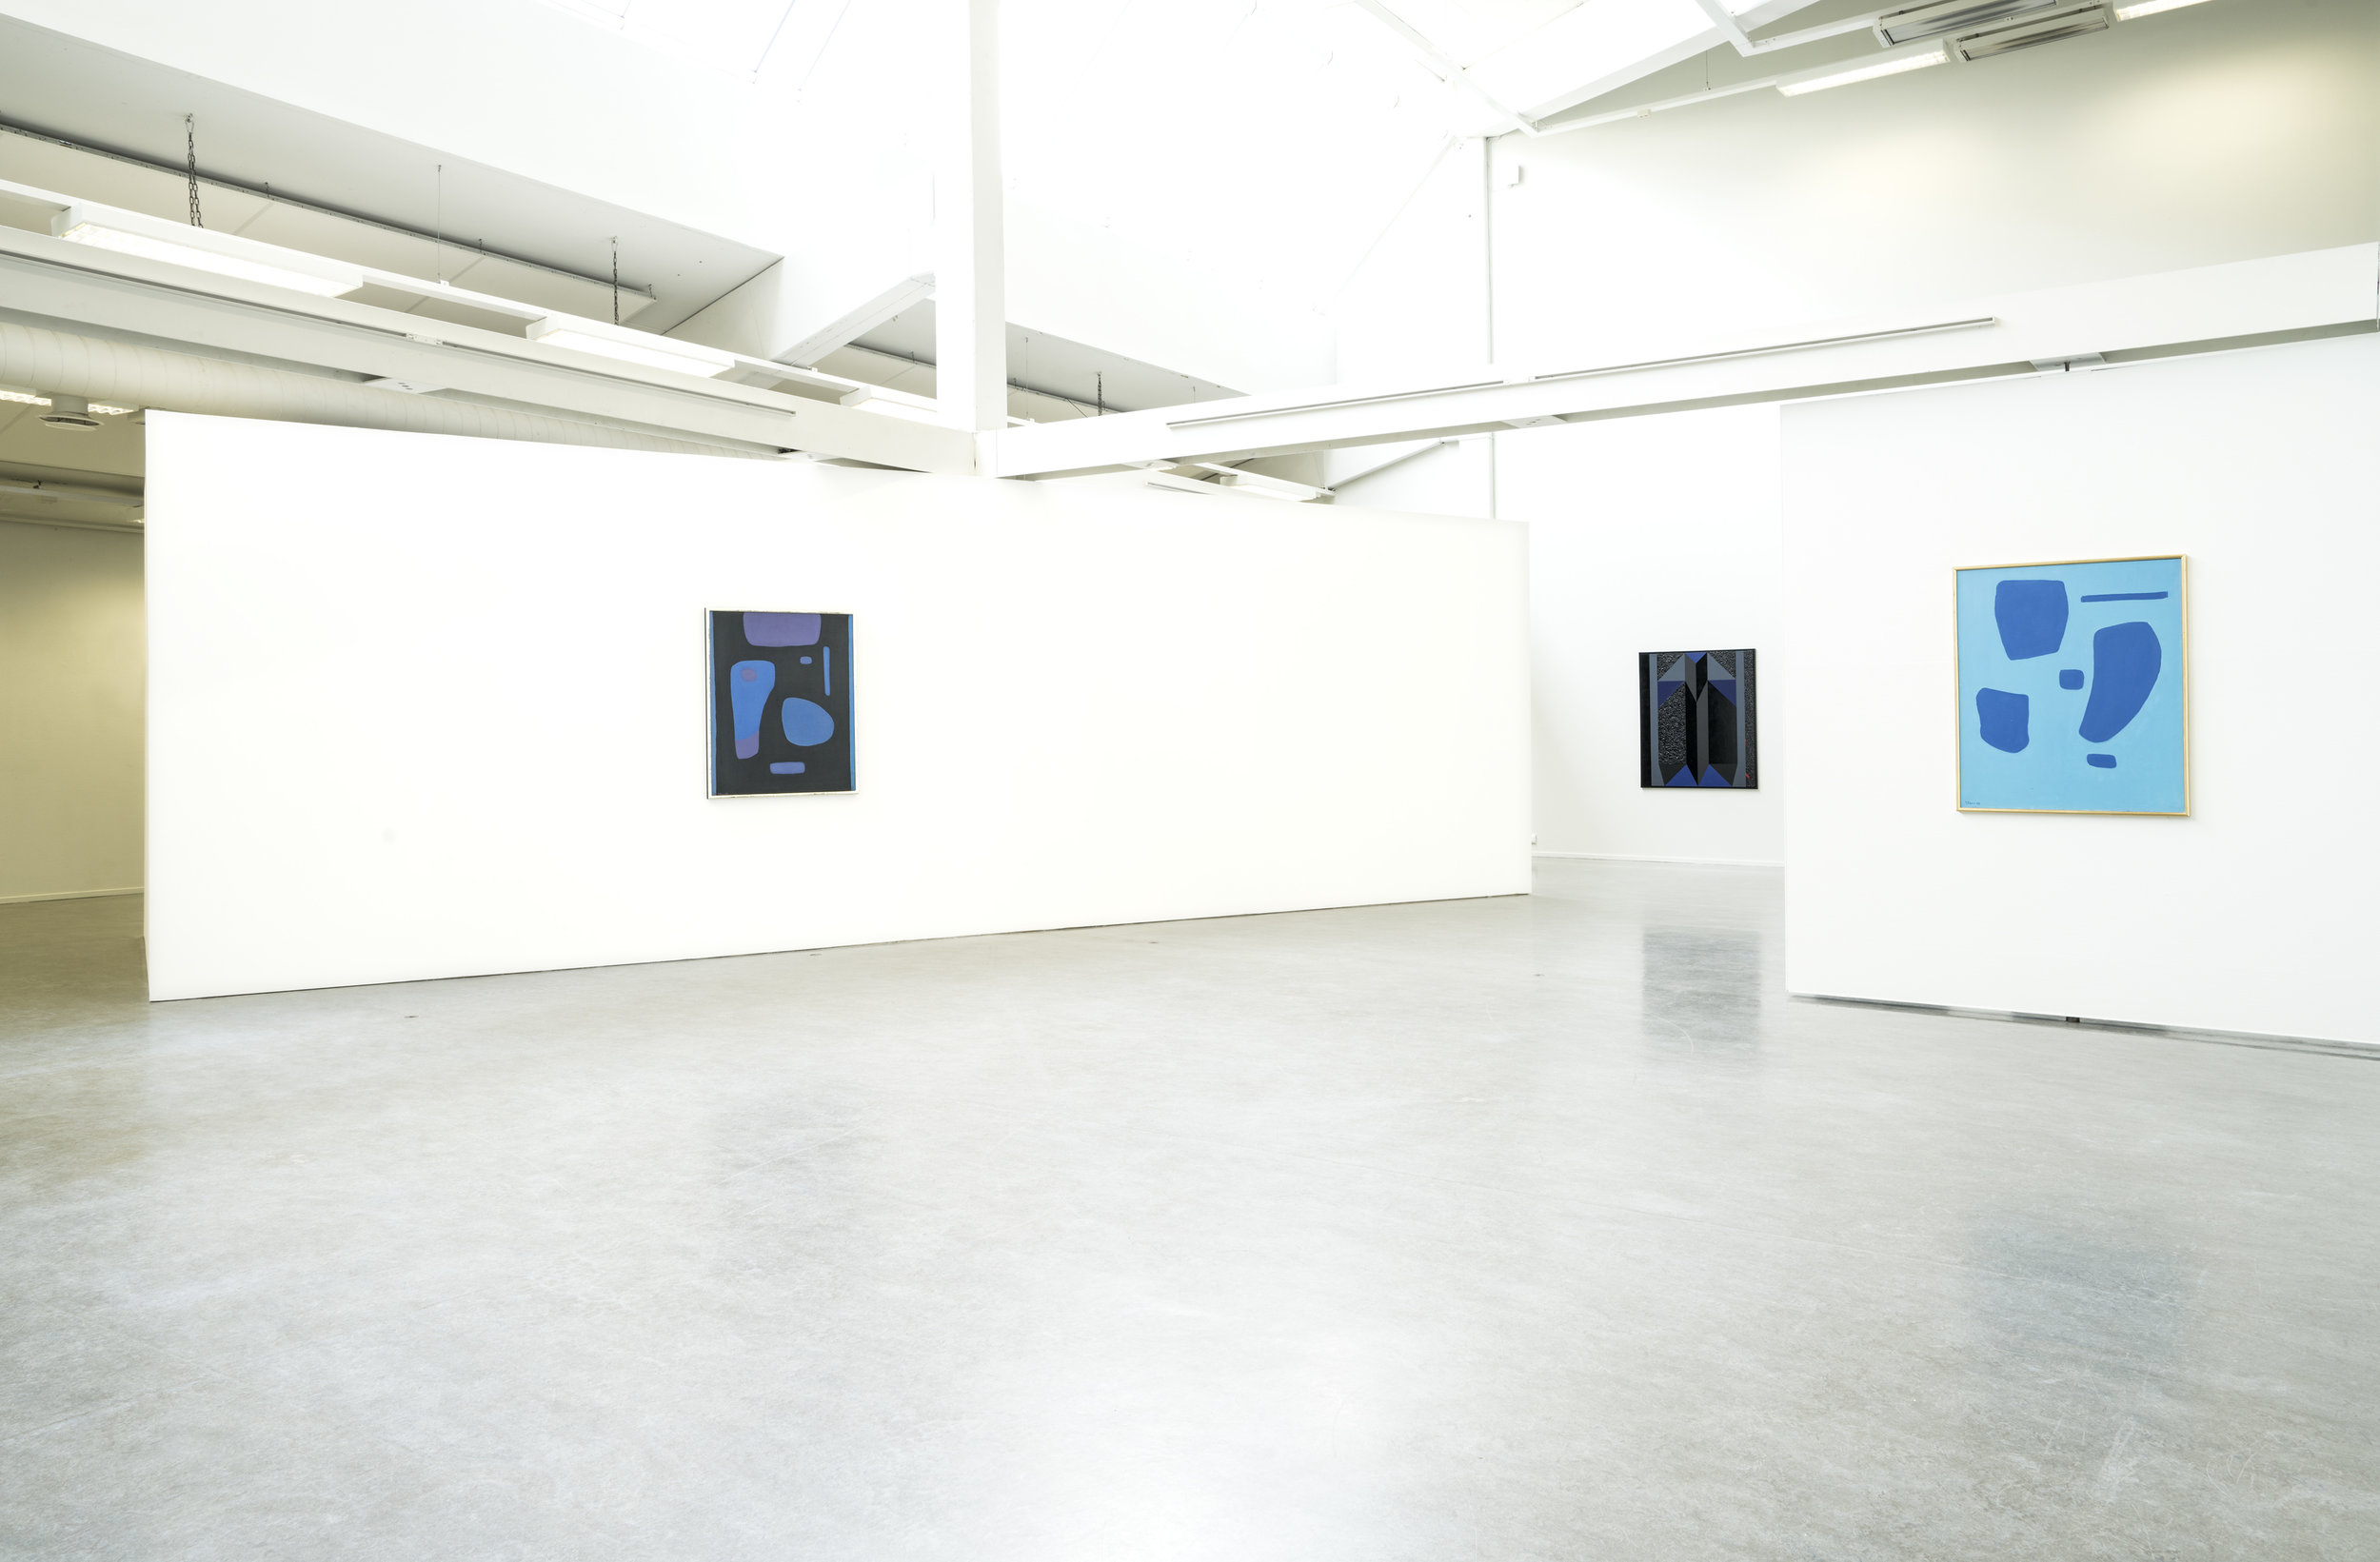 Installation view From left: Johs.Rian, Arve Hovig, Johs. Rian